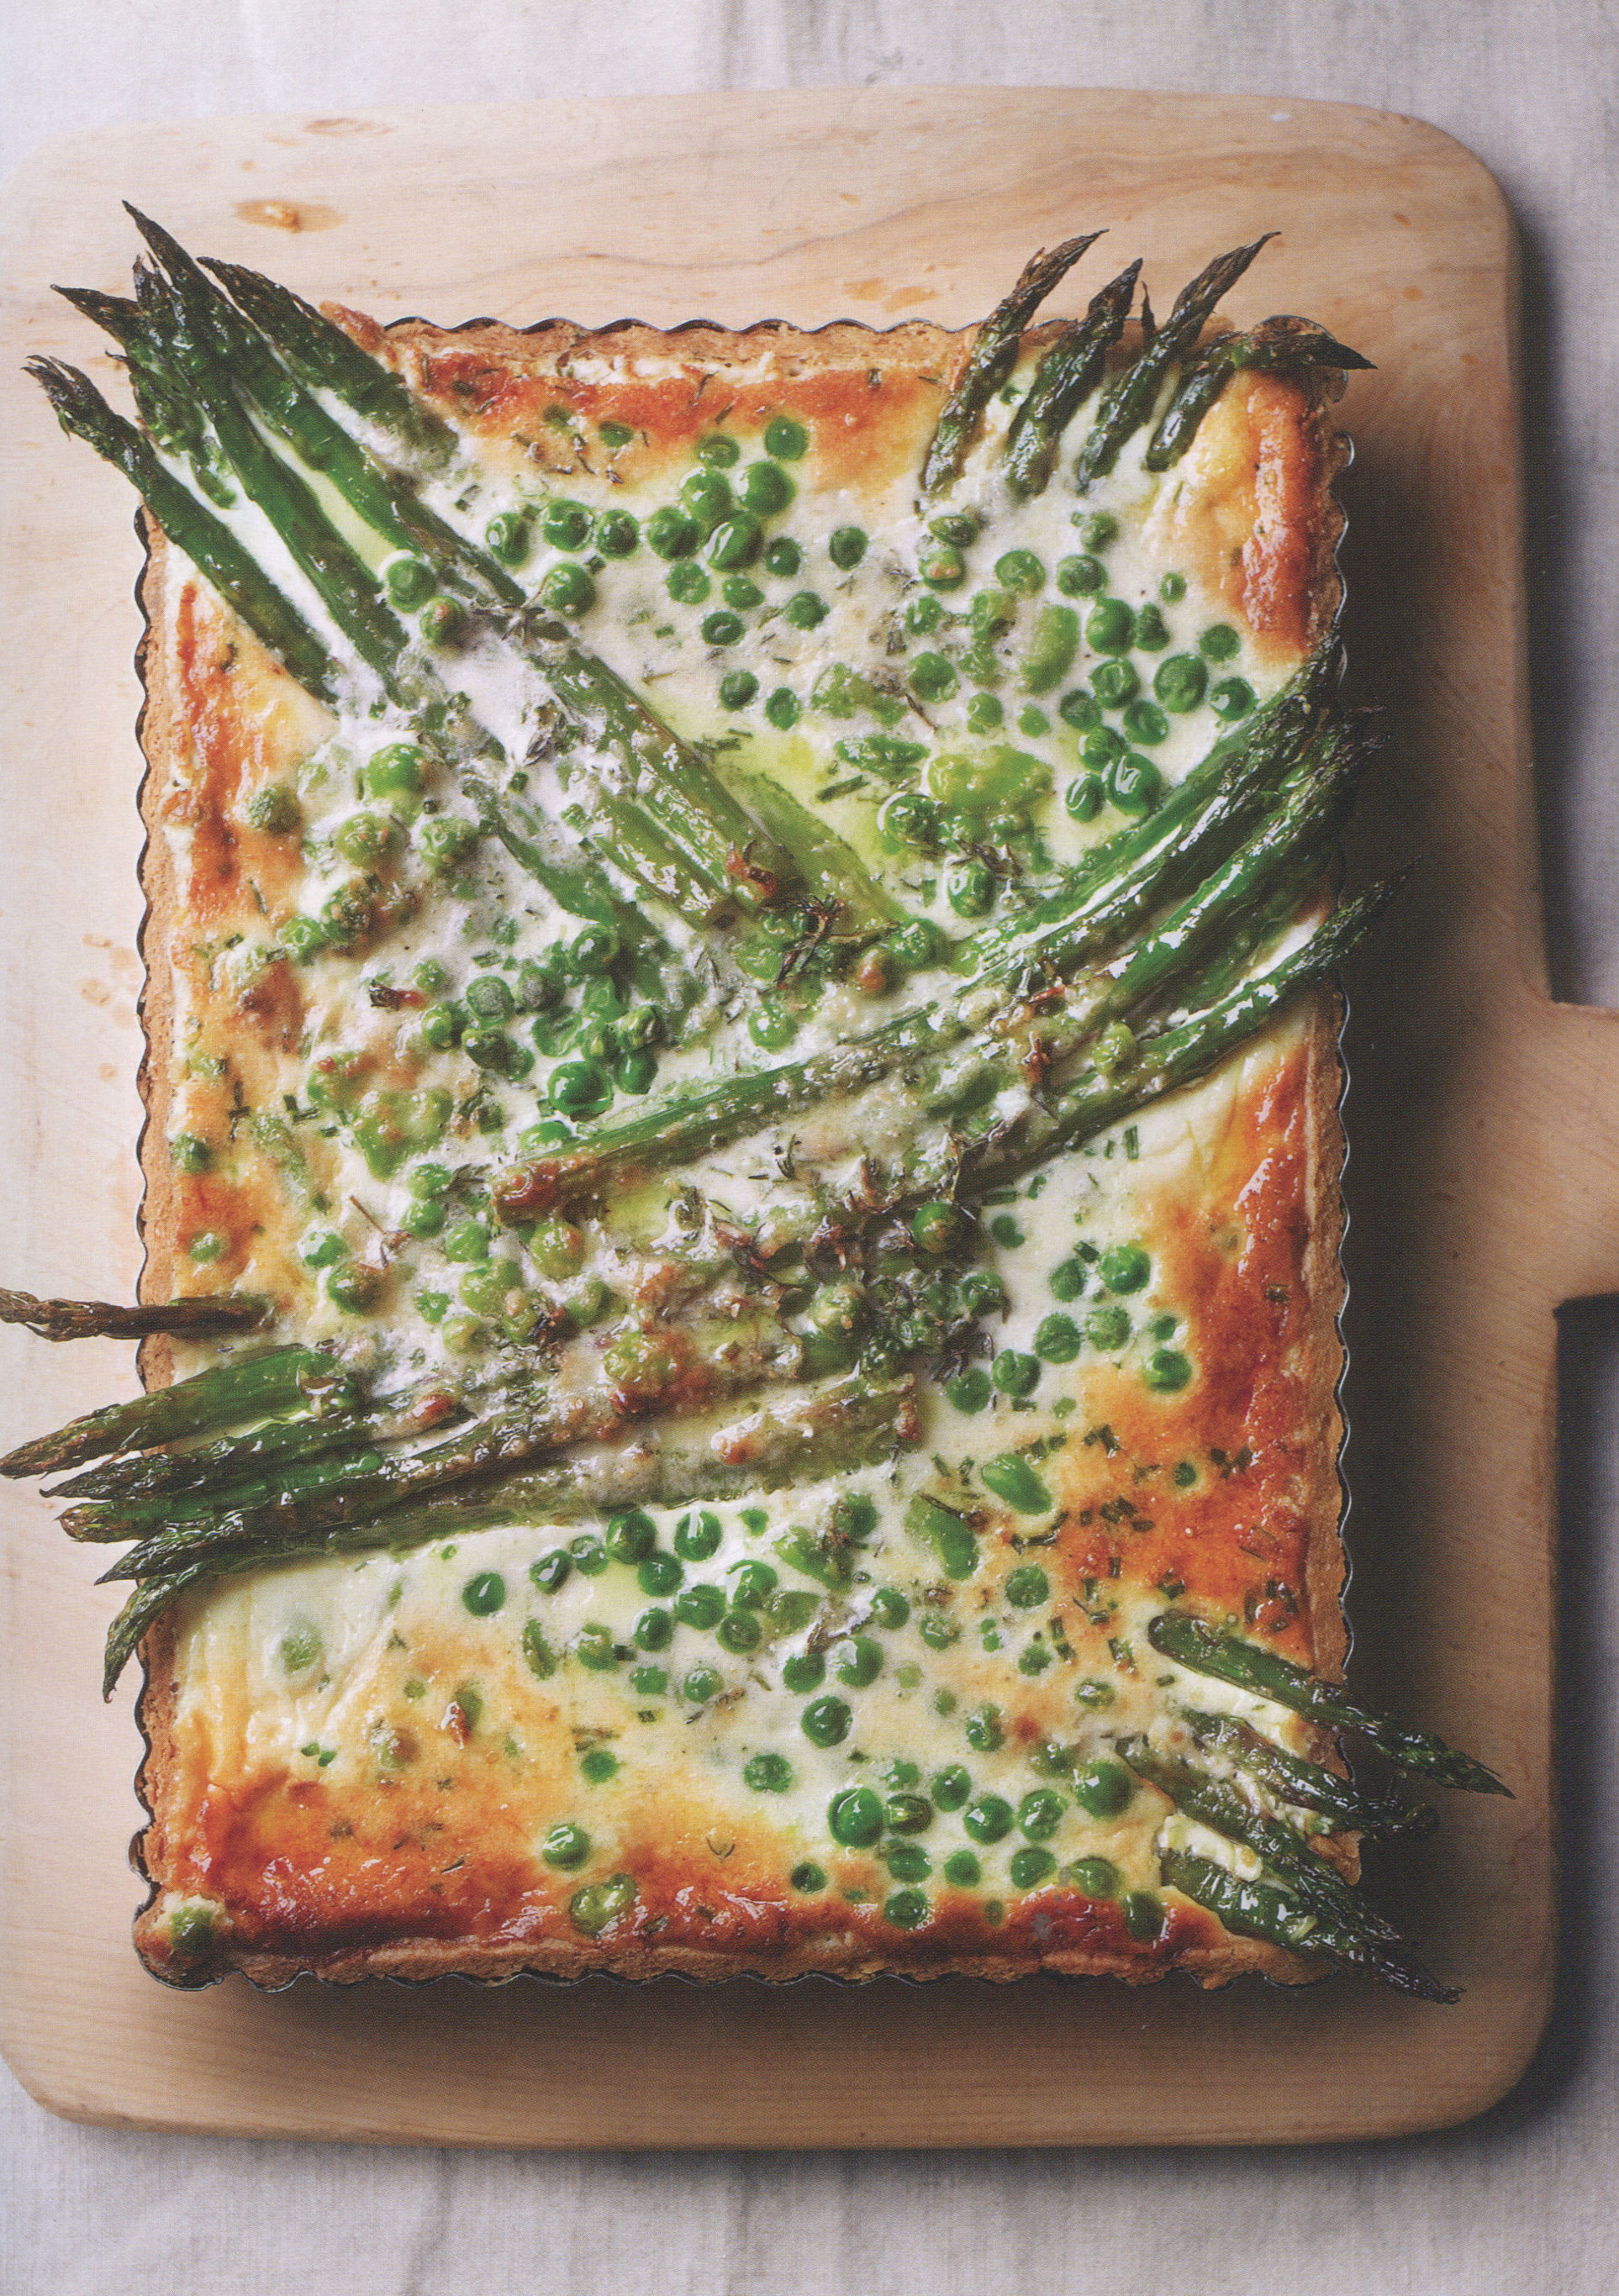 TBT Recipe: Spring Green Tart from Tart It Up by Eric Lanlard